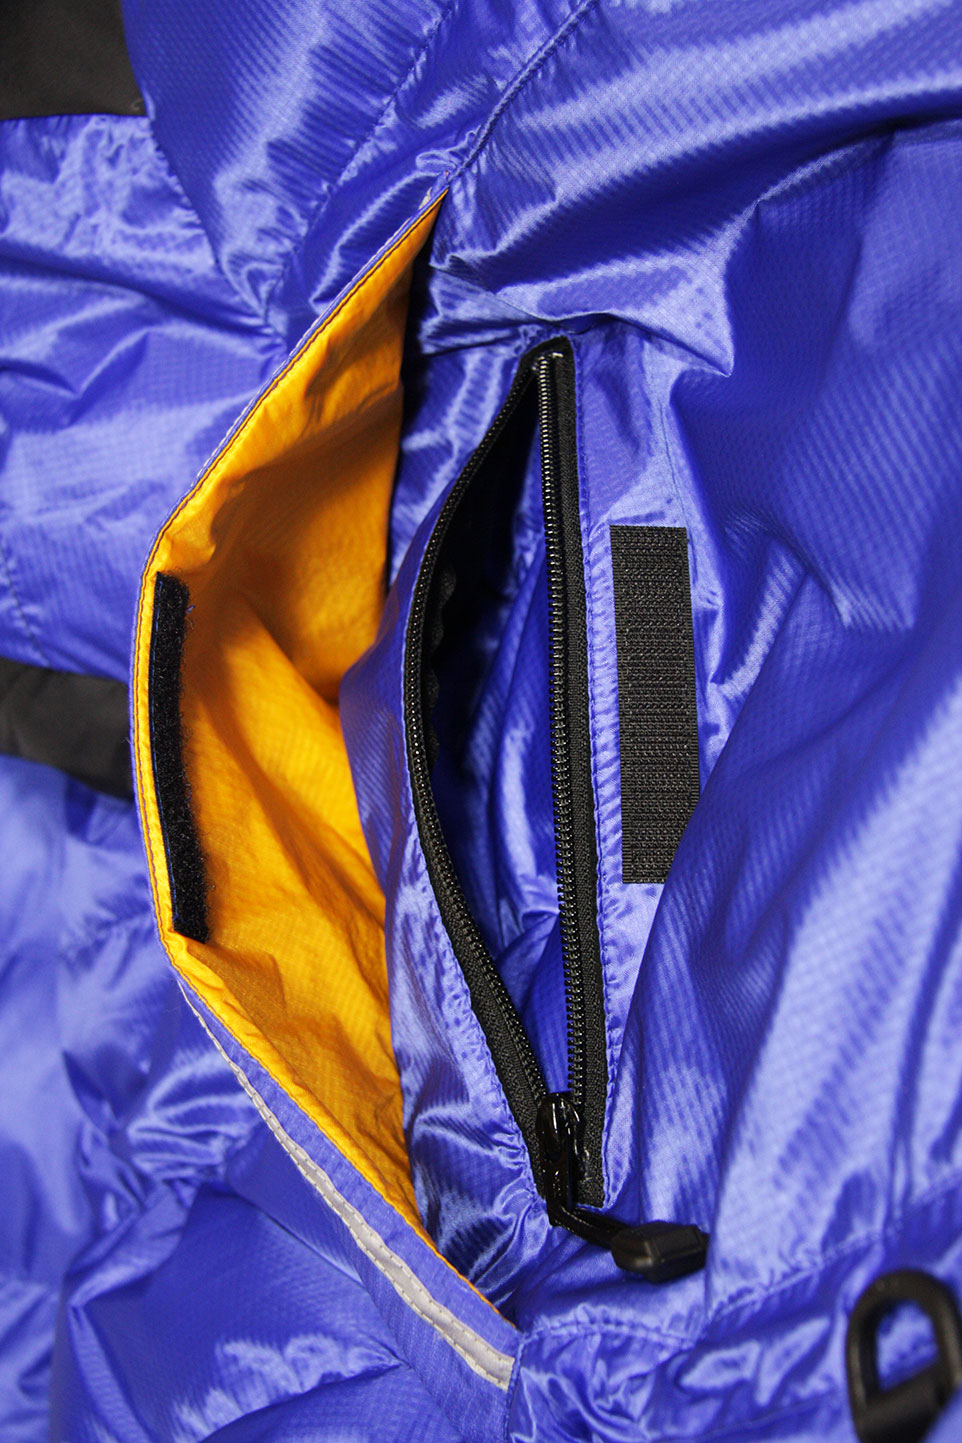 Xero jacket, pocket